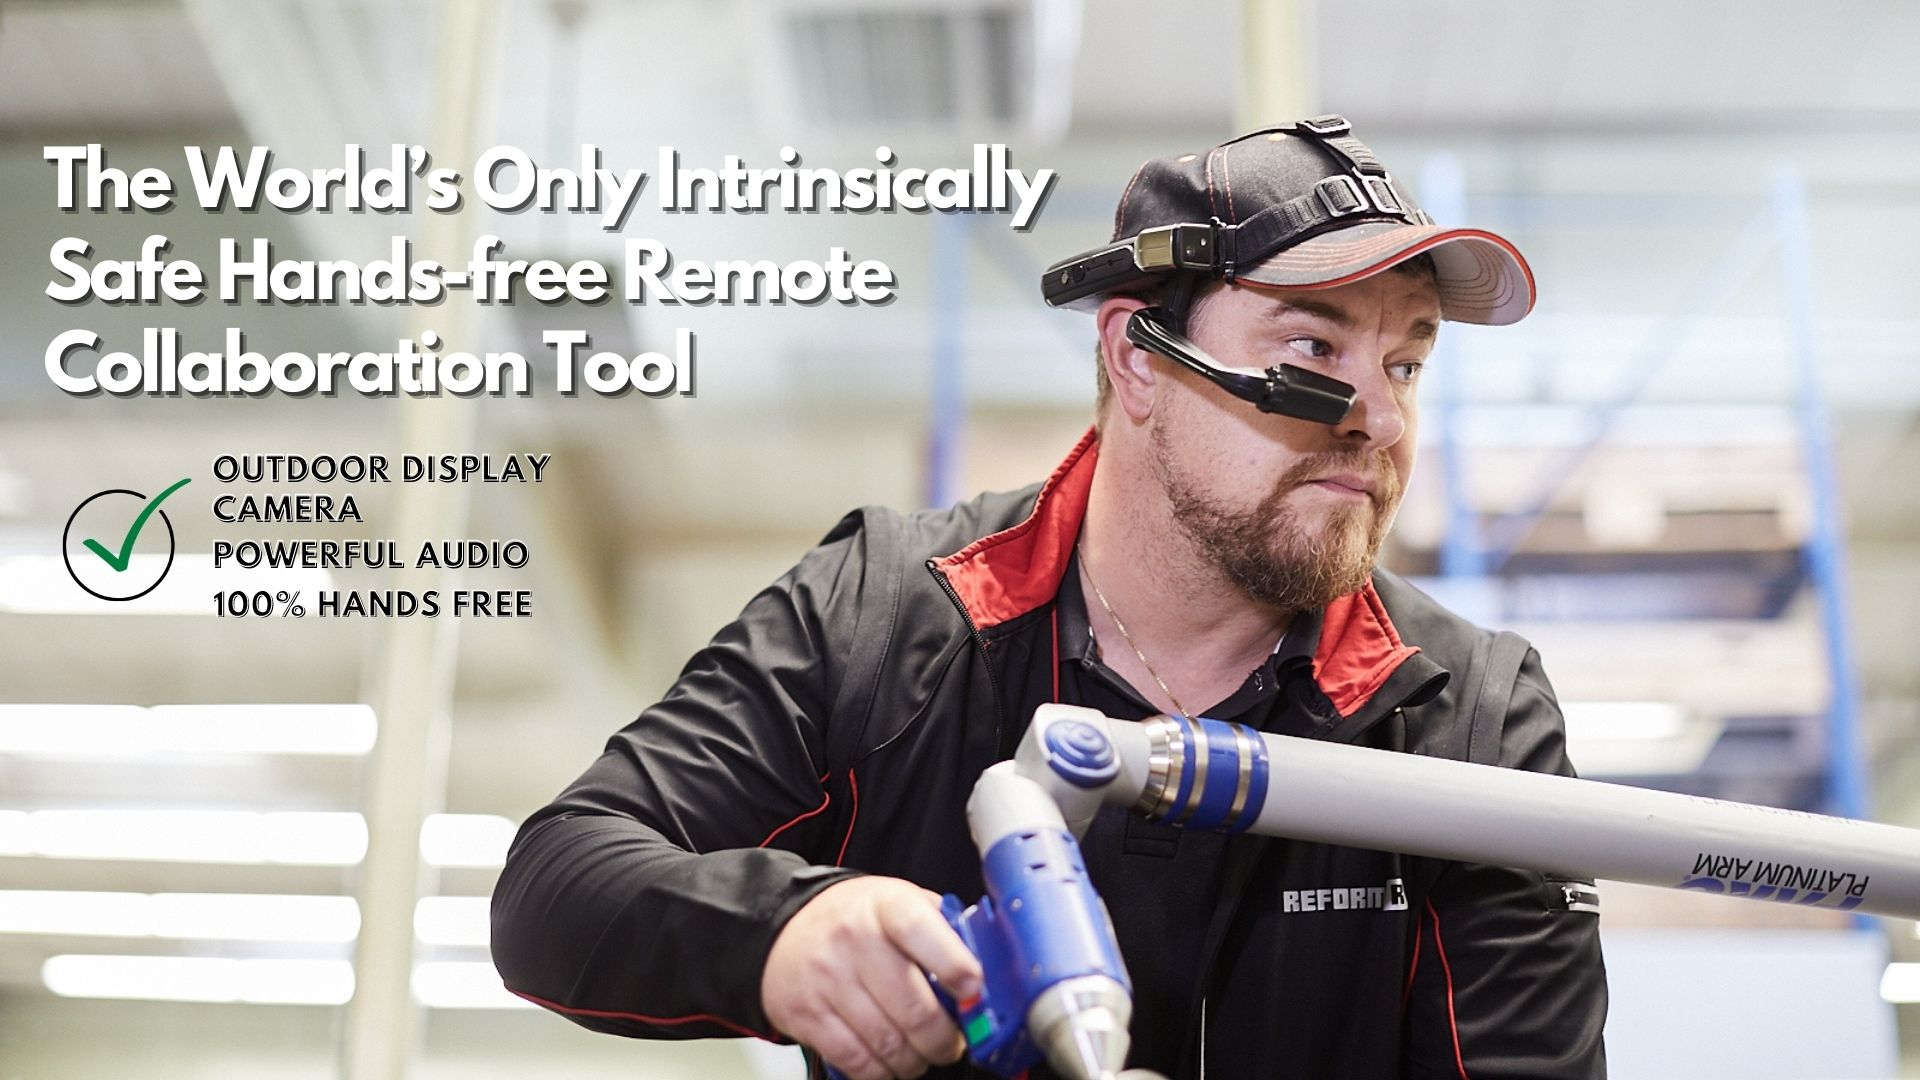 The World's Only Intrinsically Safe Hands-free Remote Collaboration Tool (3)